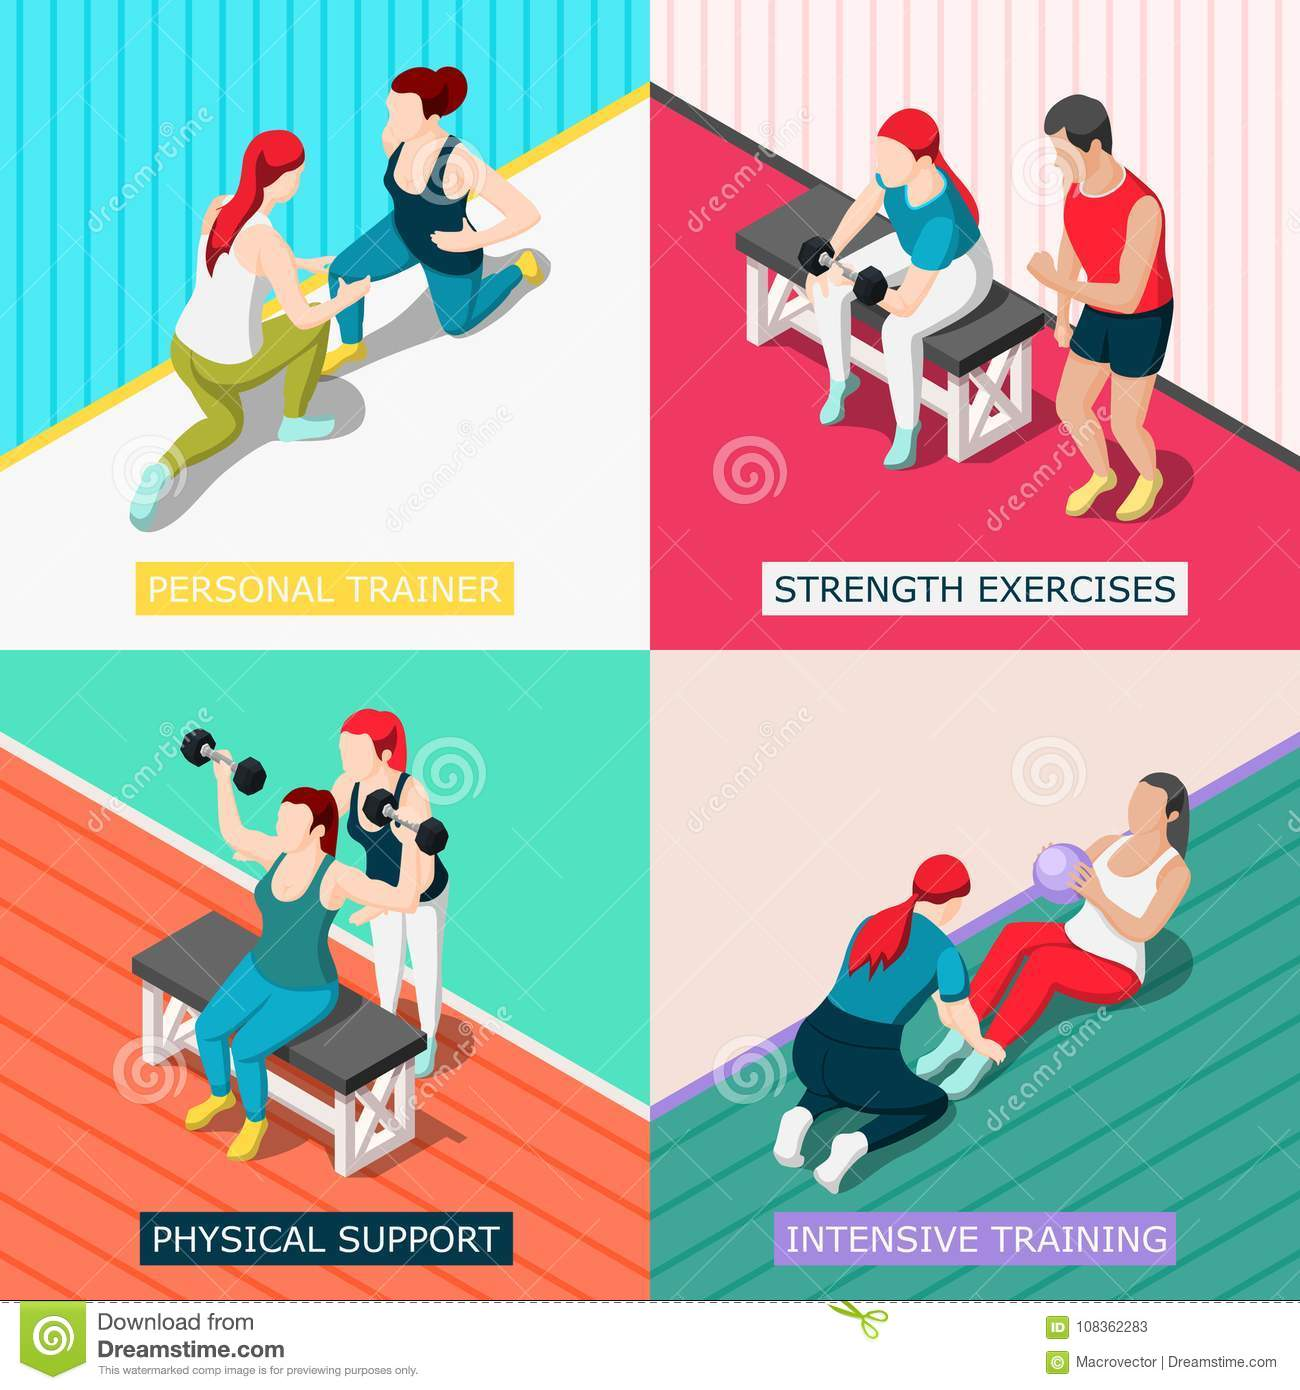 a0570b465b3 Personal sport trainers 2x2 design concept with physical support strength  exercises intensive training square icons isometric vector illustration